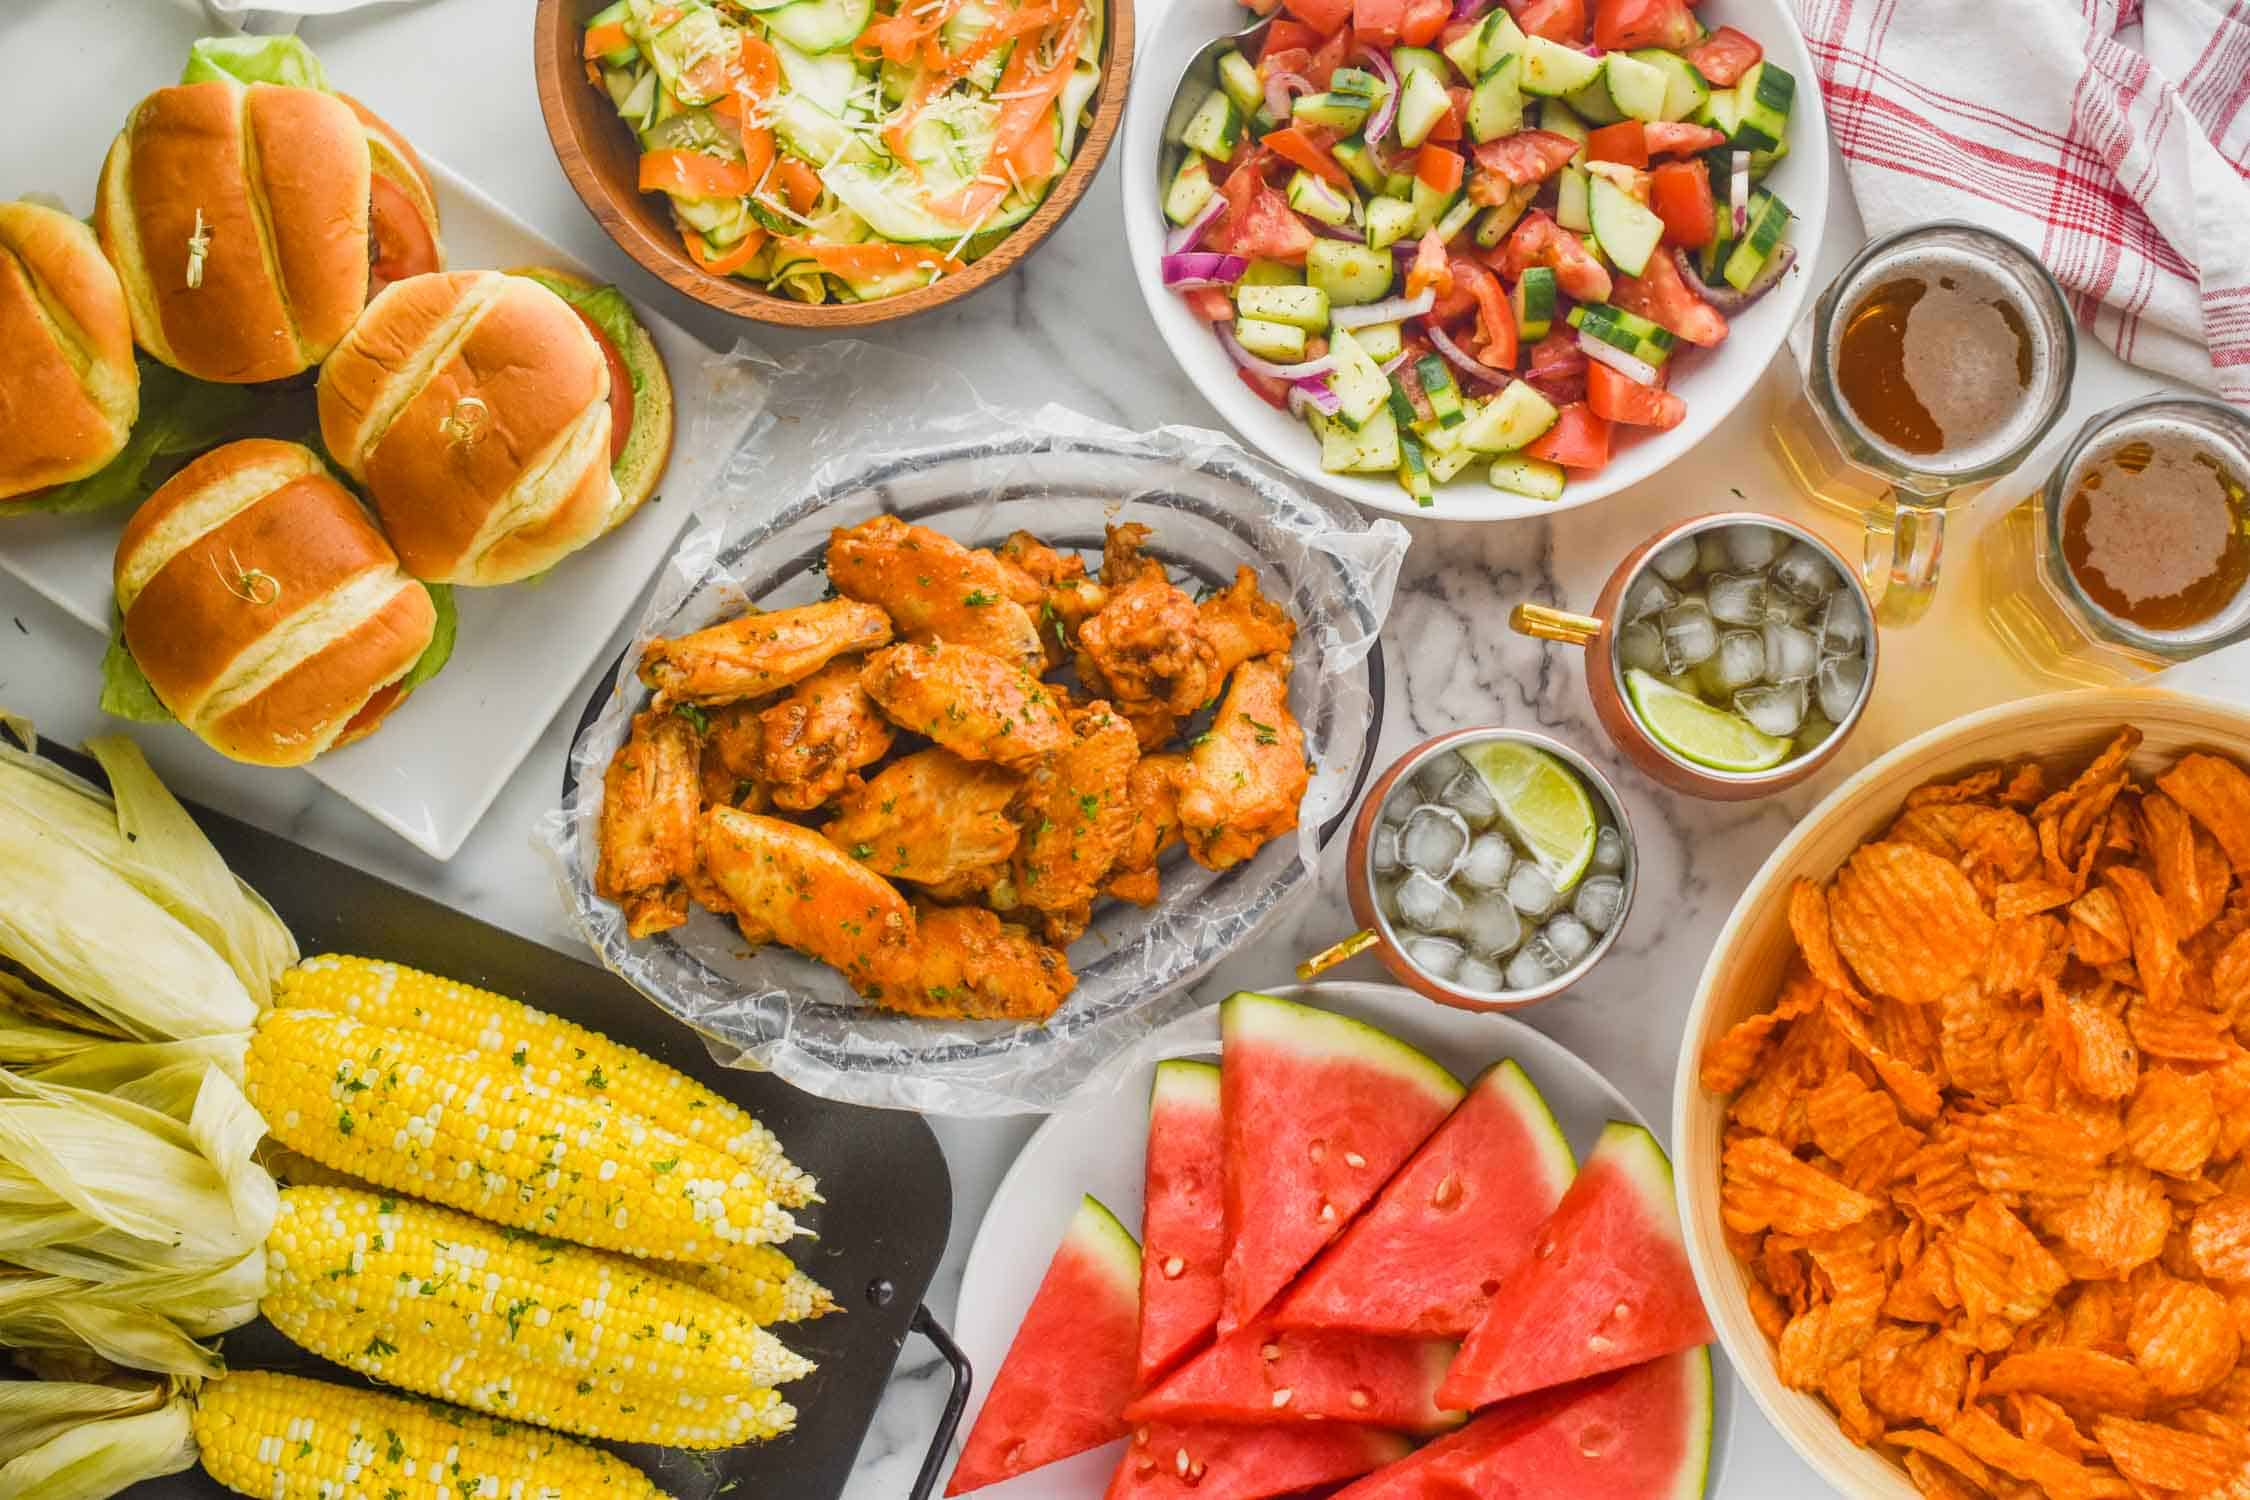 overhead view of table full of summer picnic food